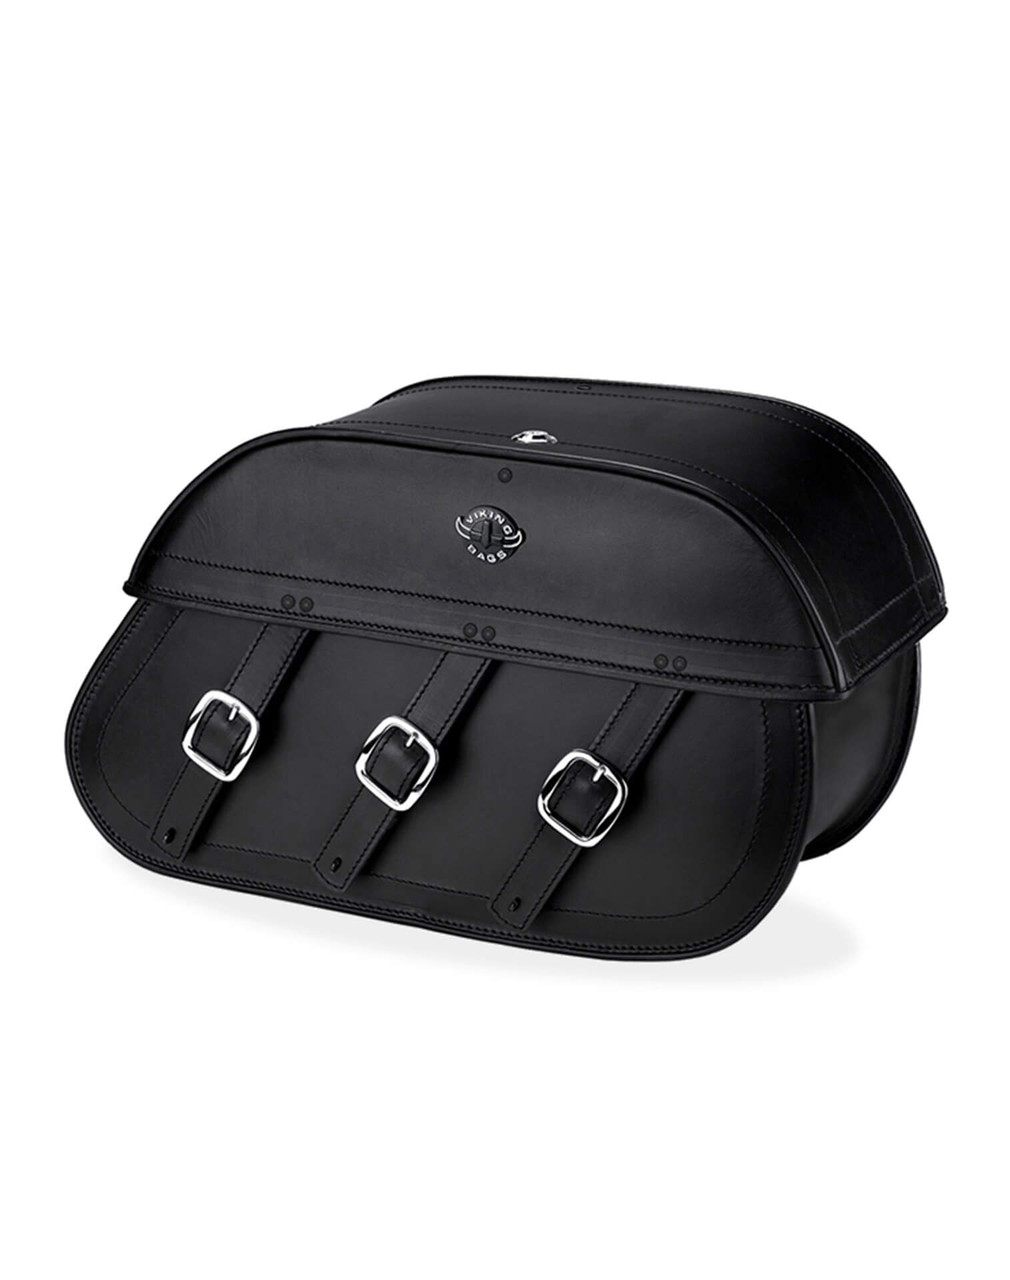 Victory Judge Trianon Motorcycle Saddlebags Main Bag View